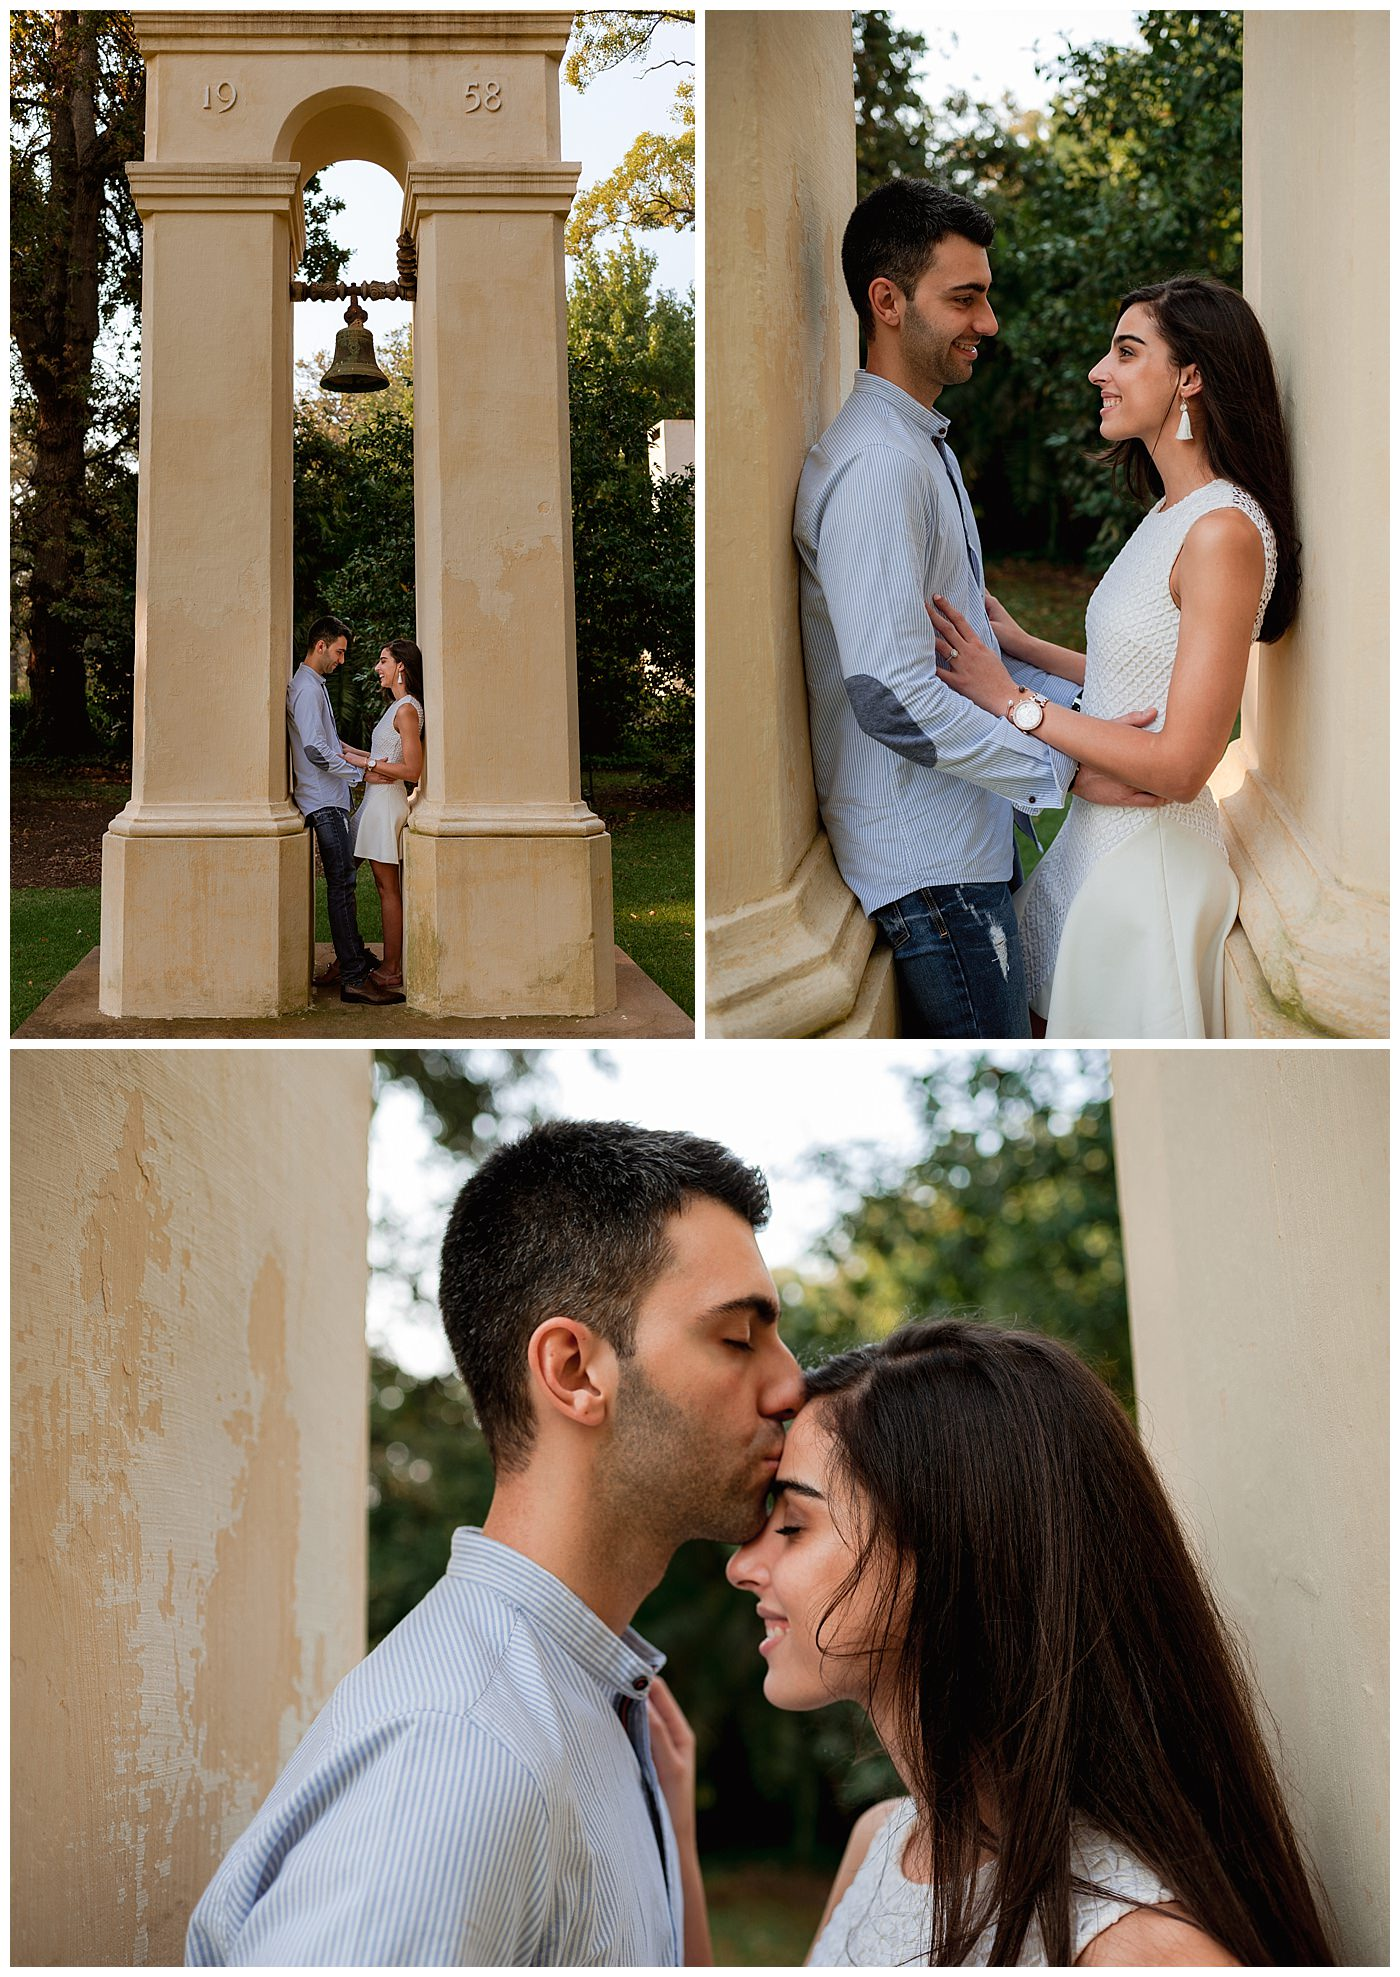 Vergelegen engagement photography